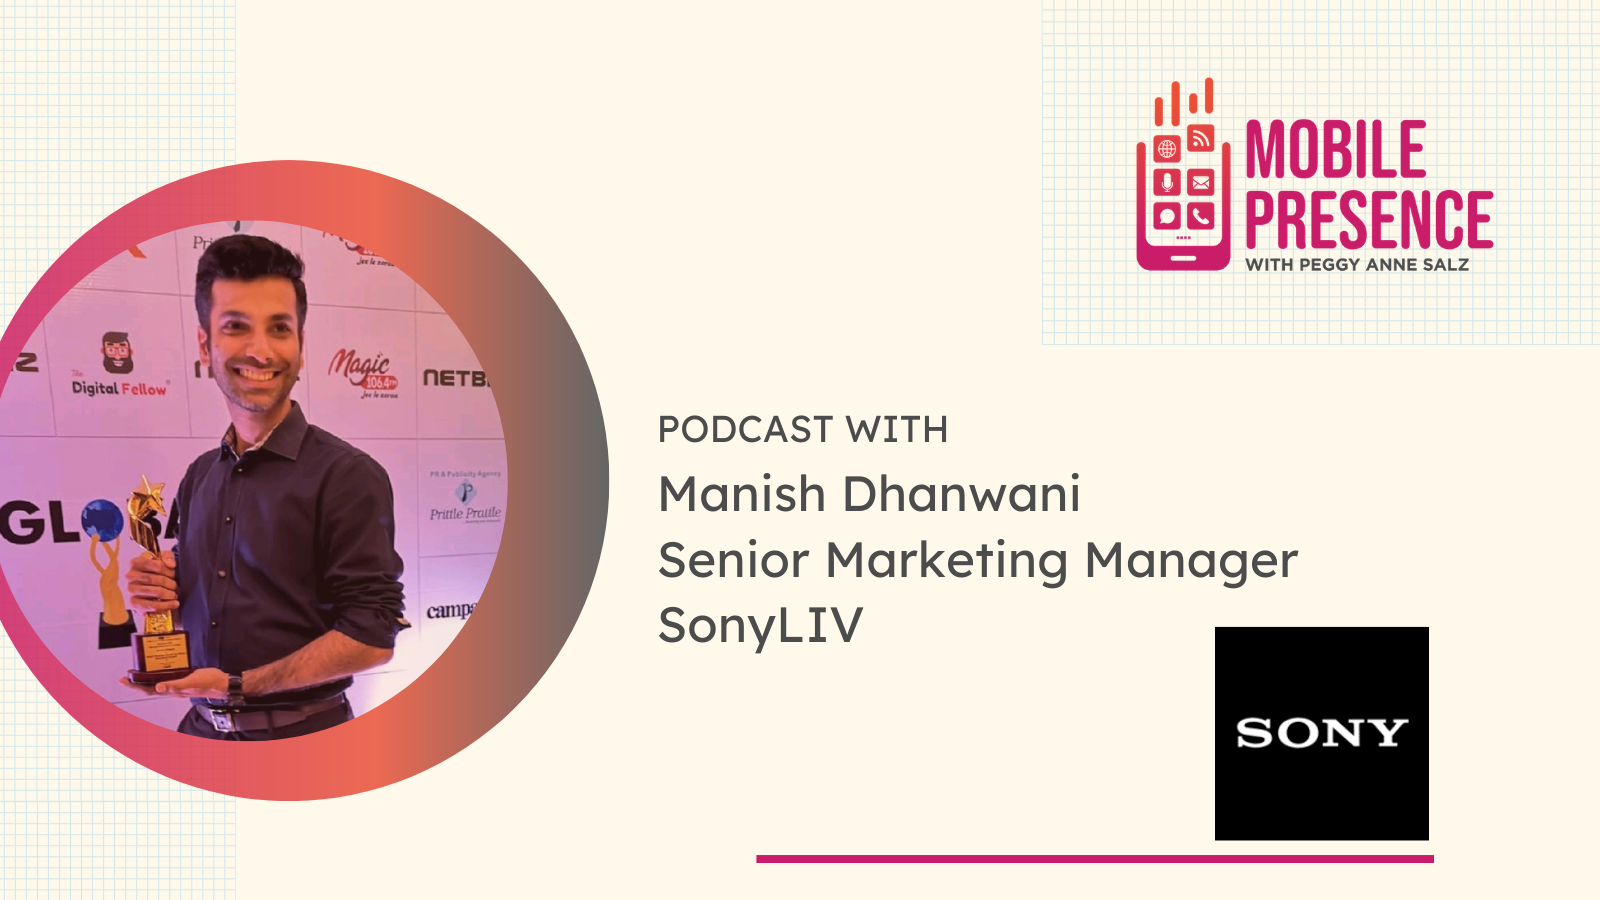 SonyLIV Turns Consumers About To Churn Into Loyal Streaming App Users With 2x Longer Viewing Times – And Here's How